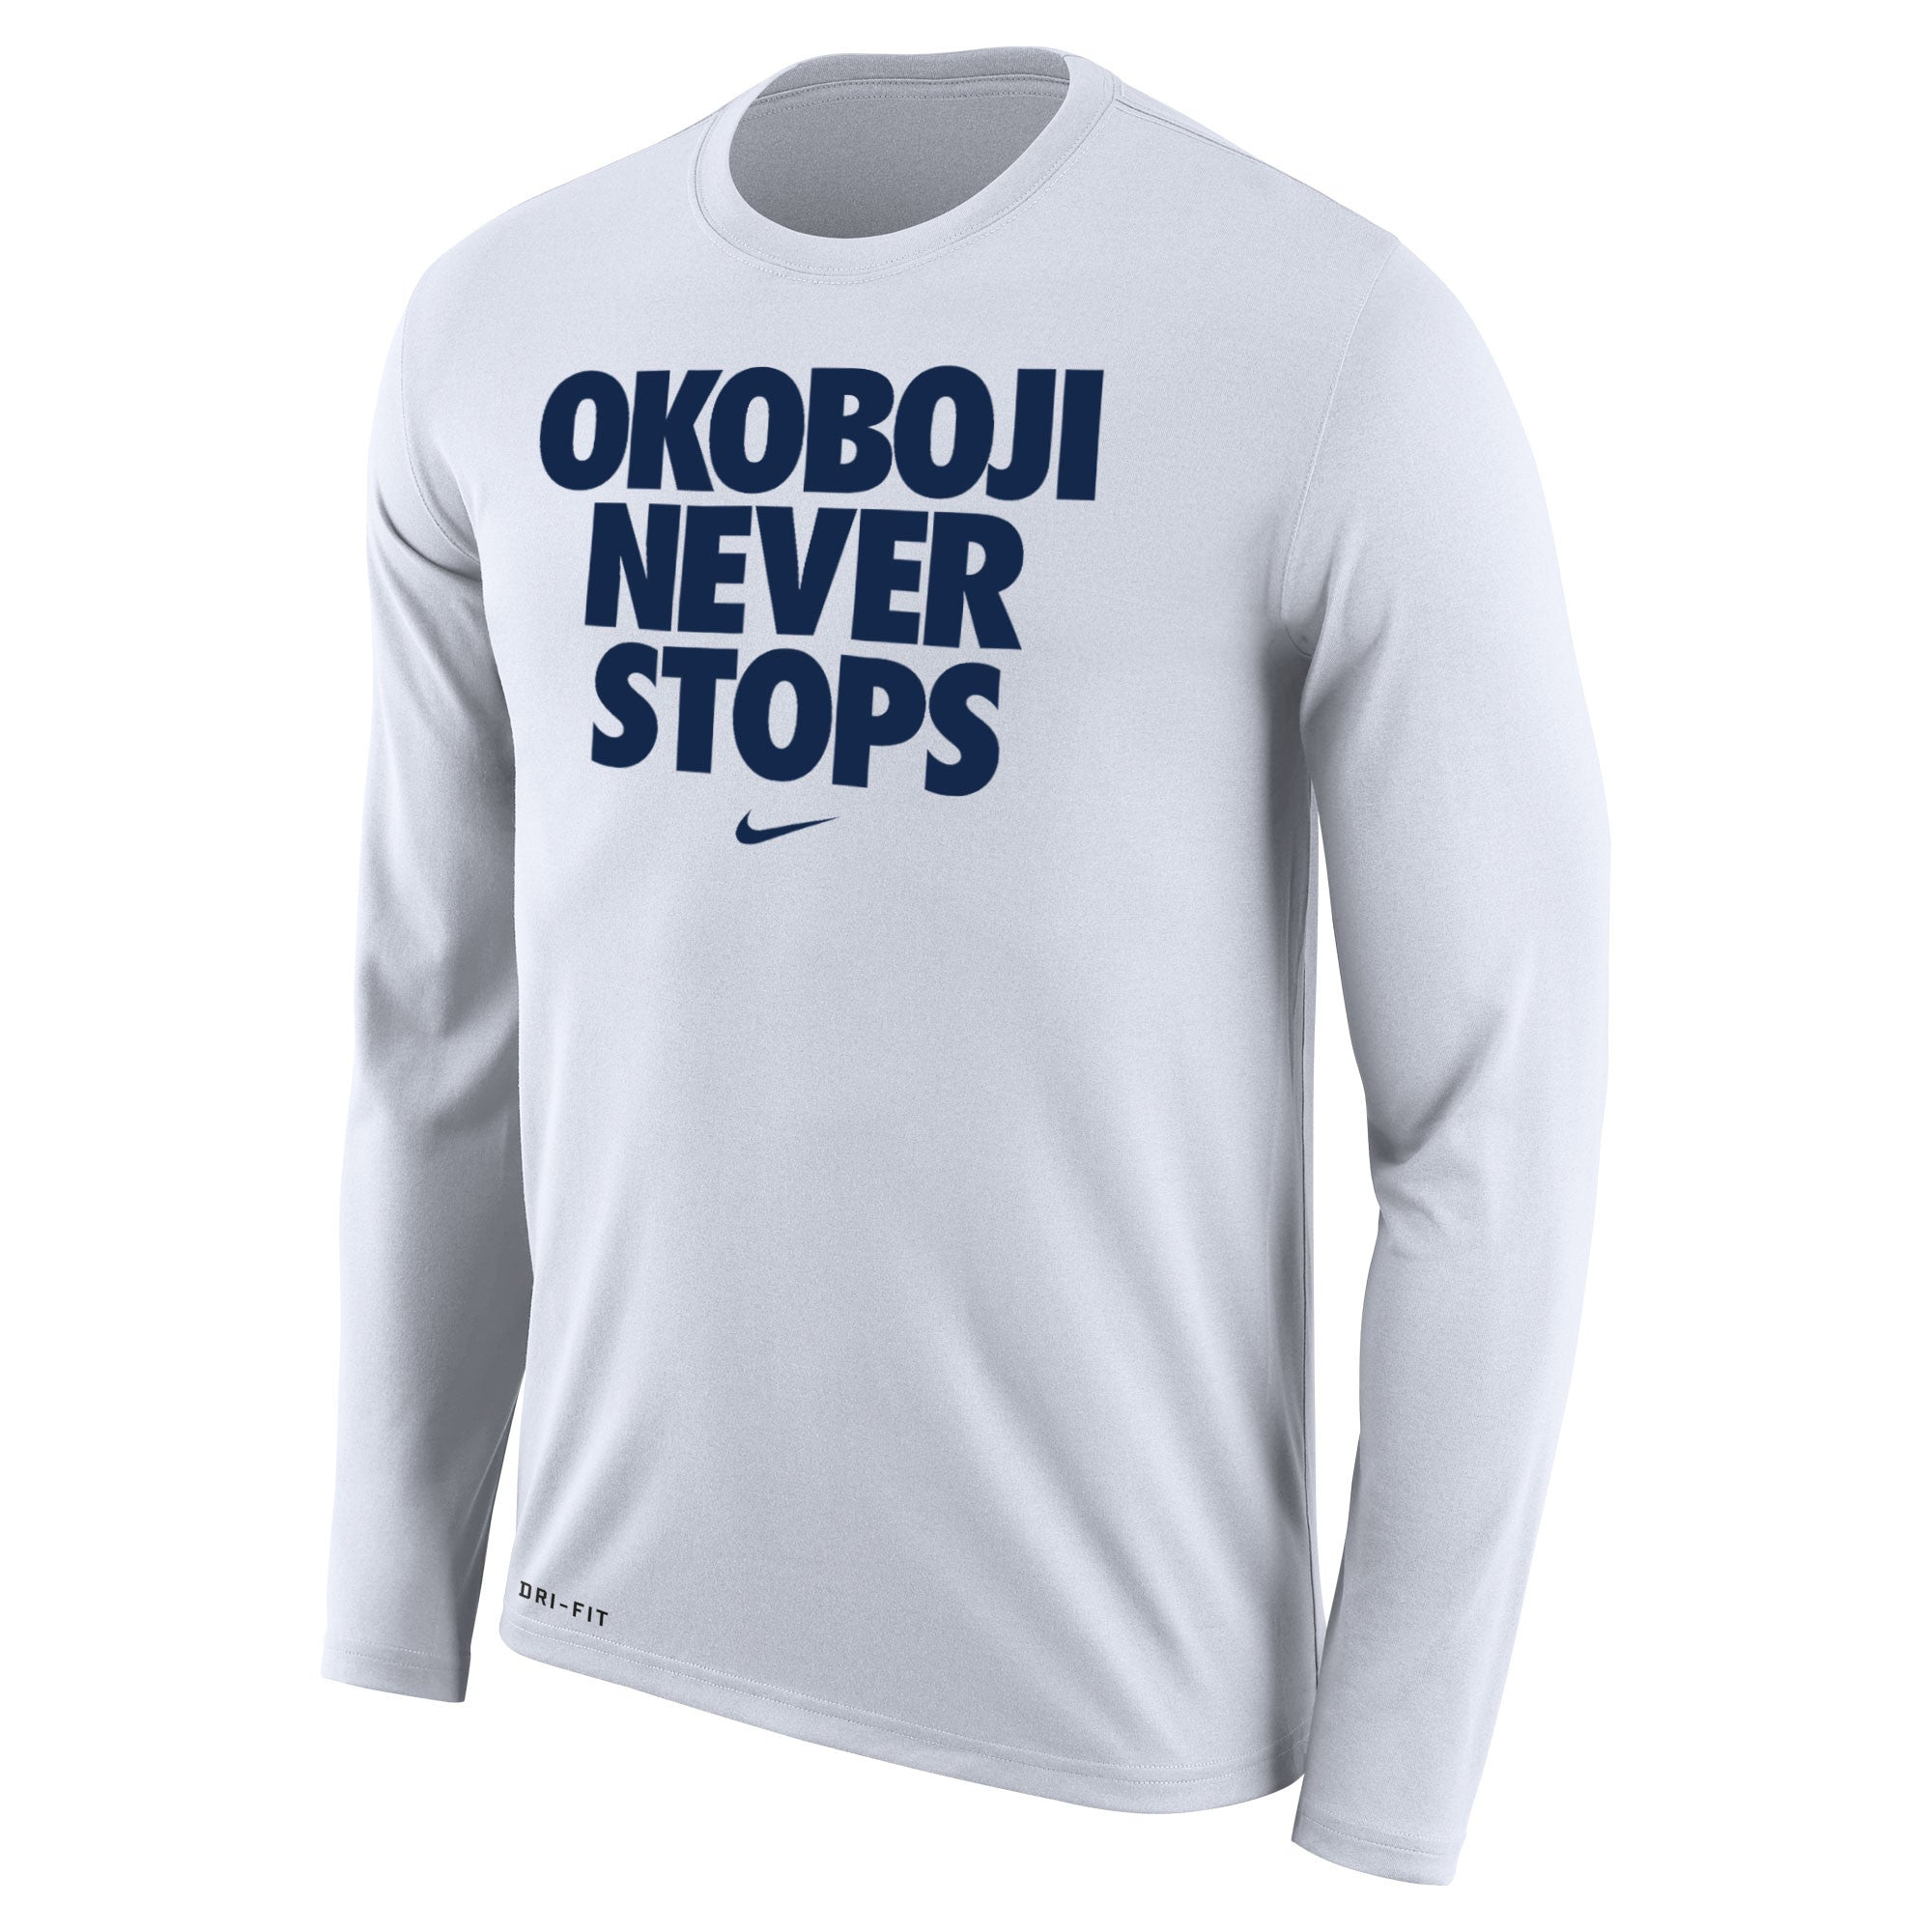 OKOBOJI NEVER STOPS Long-sleeved Tee (White)